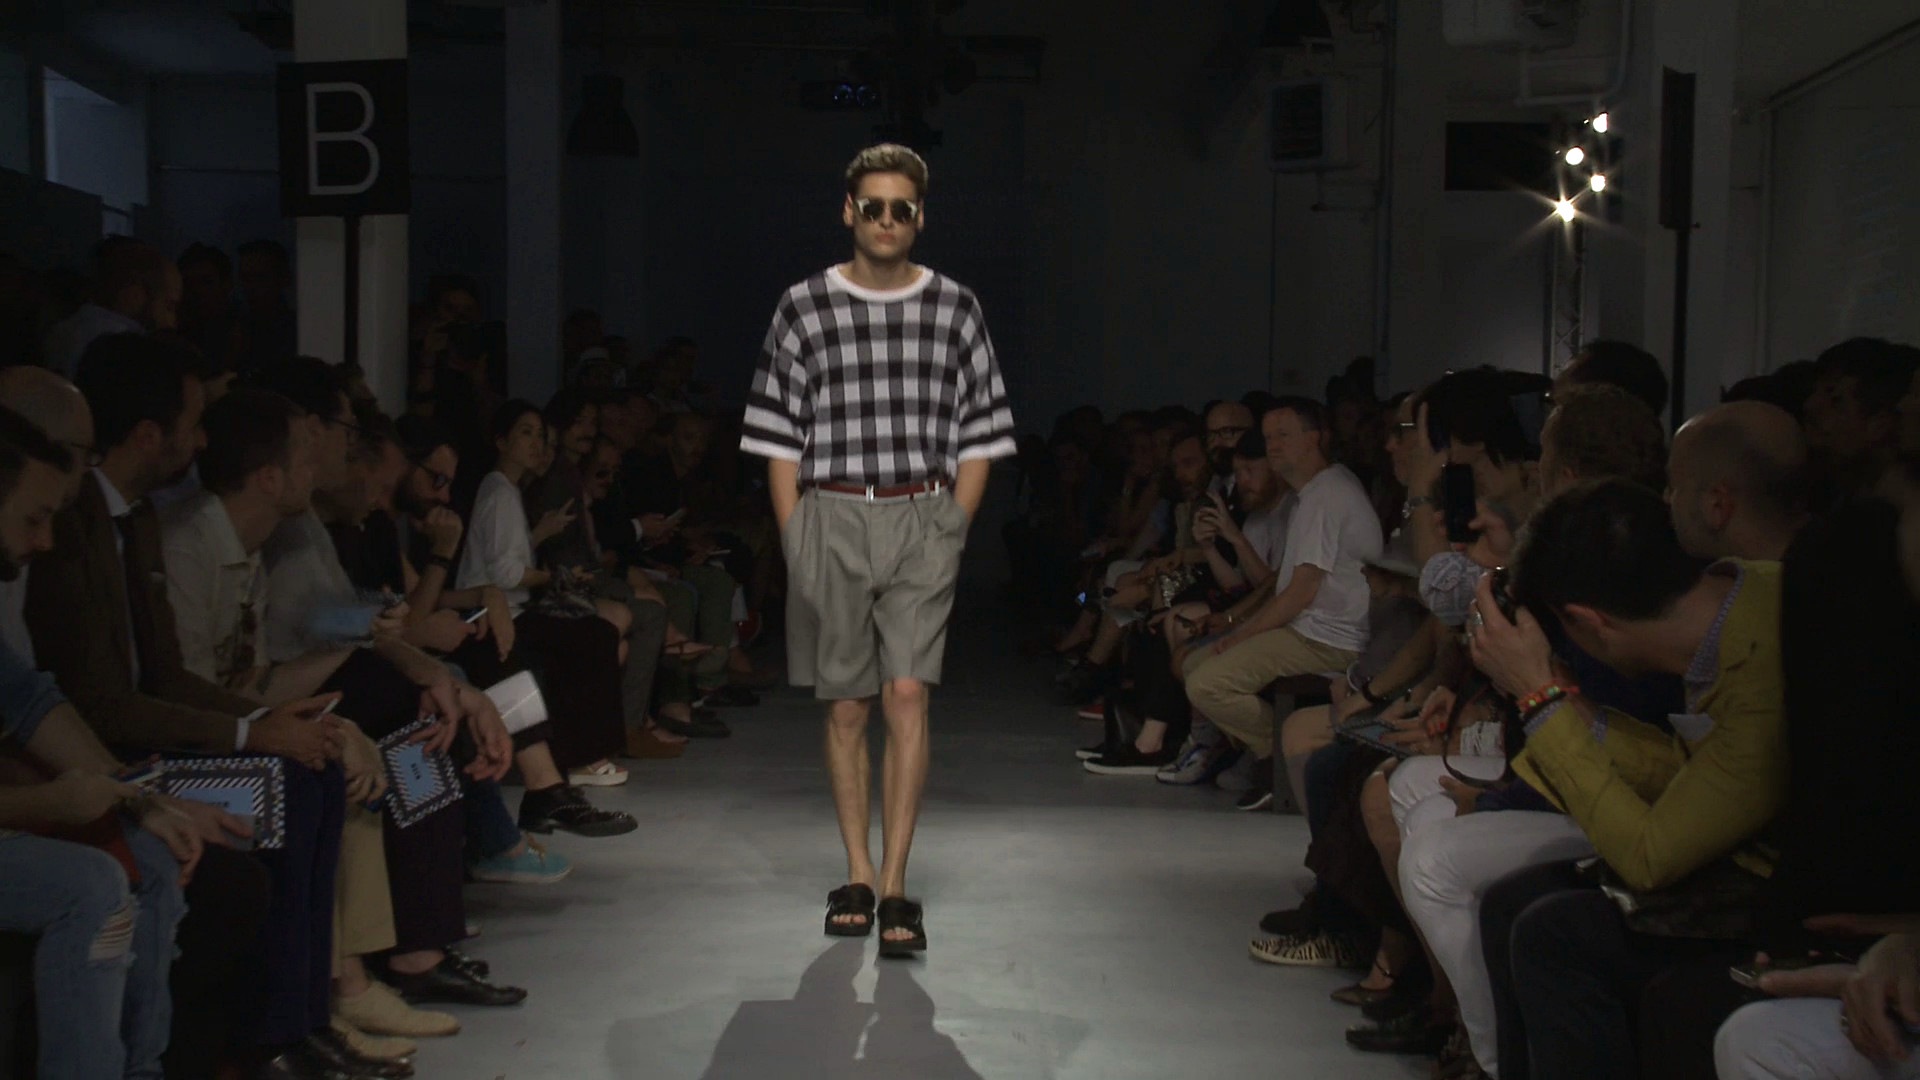 Msgm Spring Summer 2015 Men's Fashion Show - Milano Fashion Week